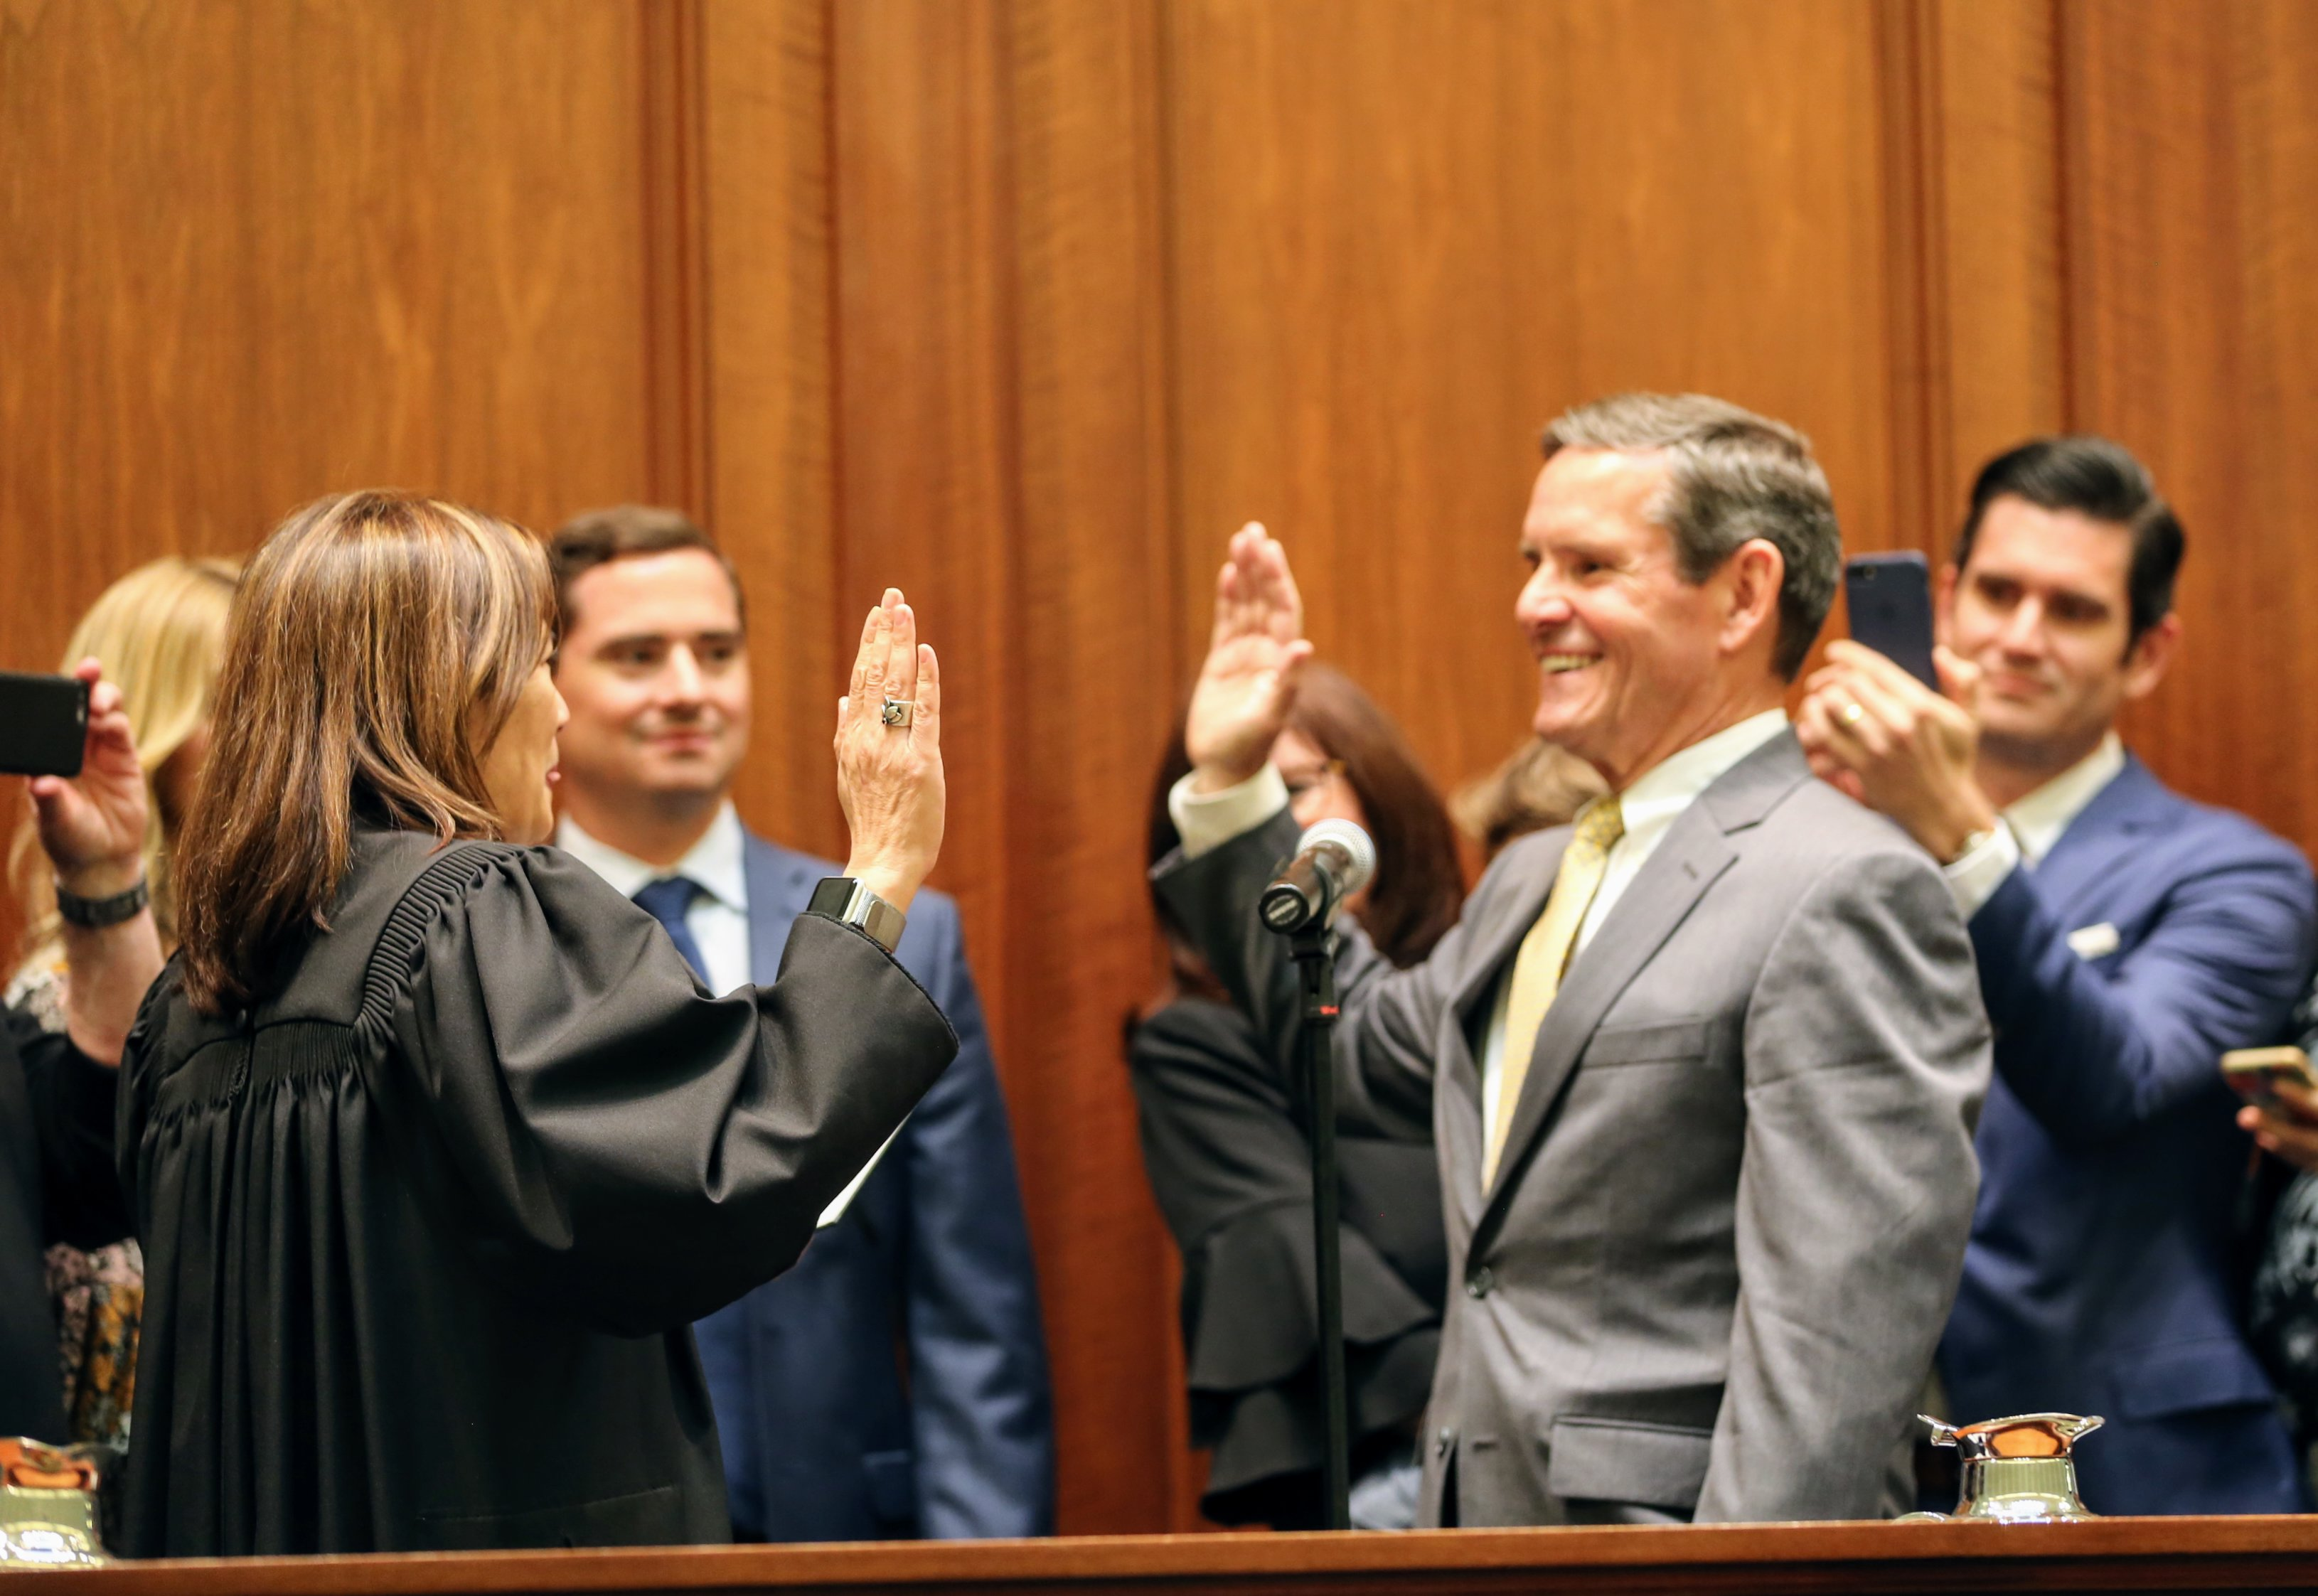 Goethals swearing in